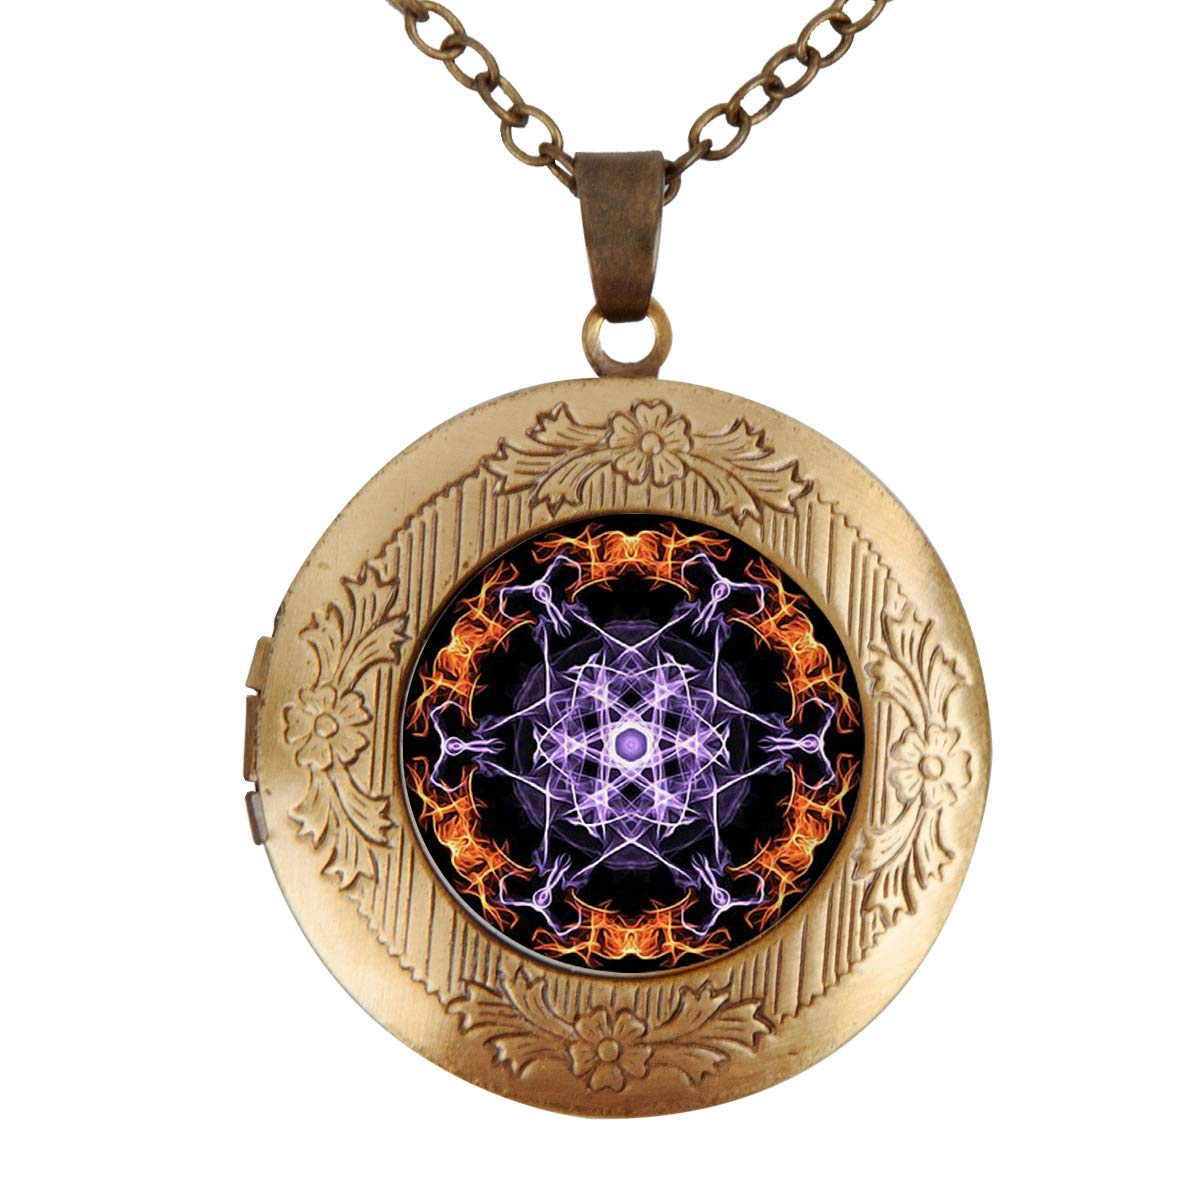 Fangship Black Mandala Locket Pendant Stainless Steel Necklace Round Box Chain Jewelry for Women Girl Boy Men 1.18 Inch Includes Adjustable Length Cable Chain